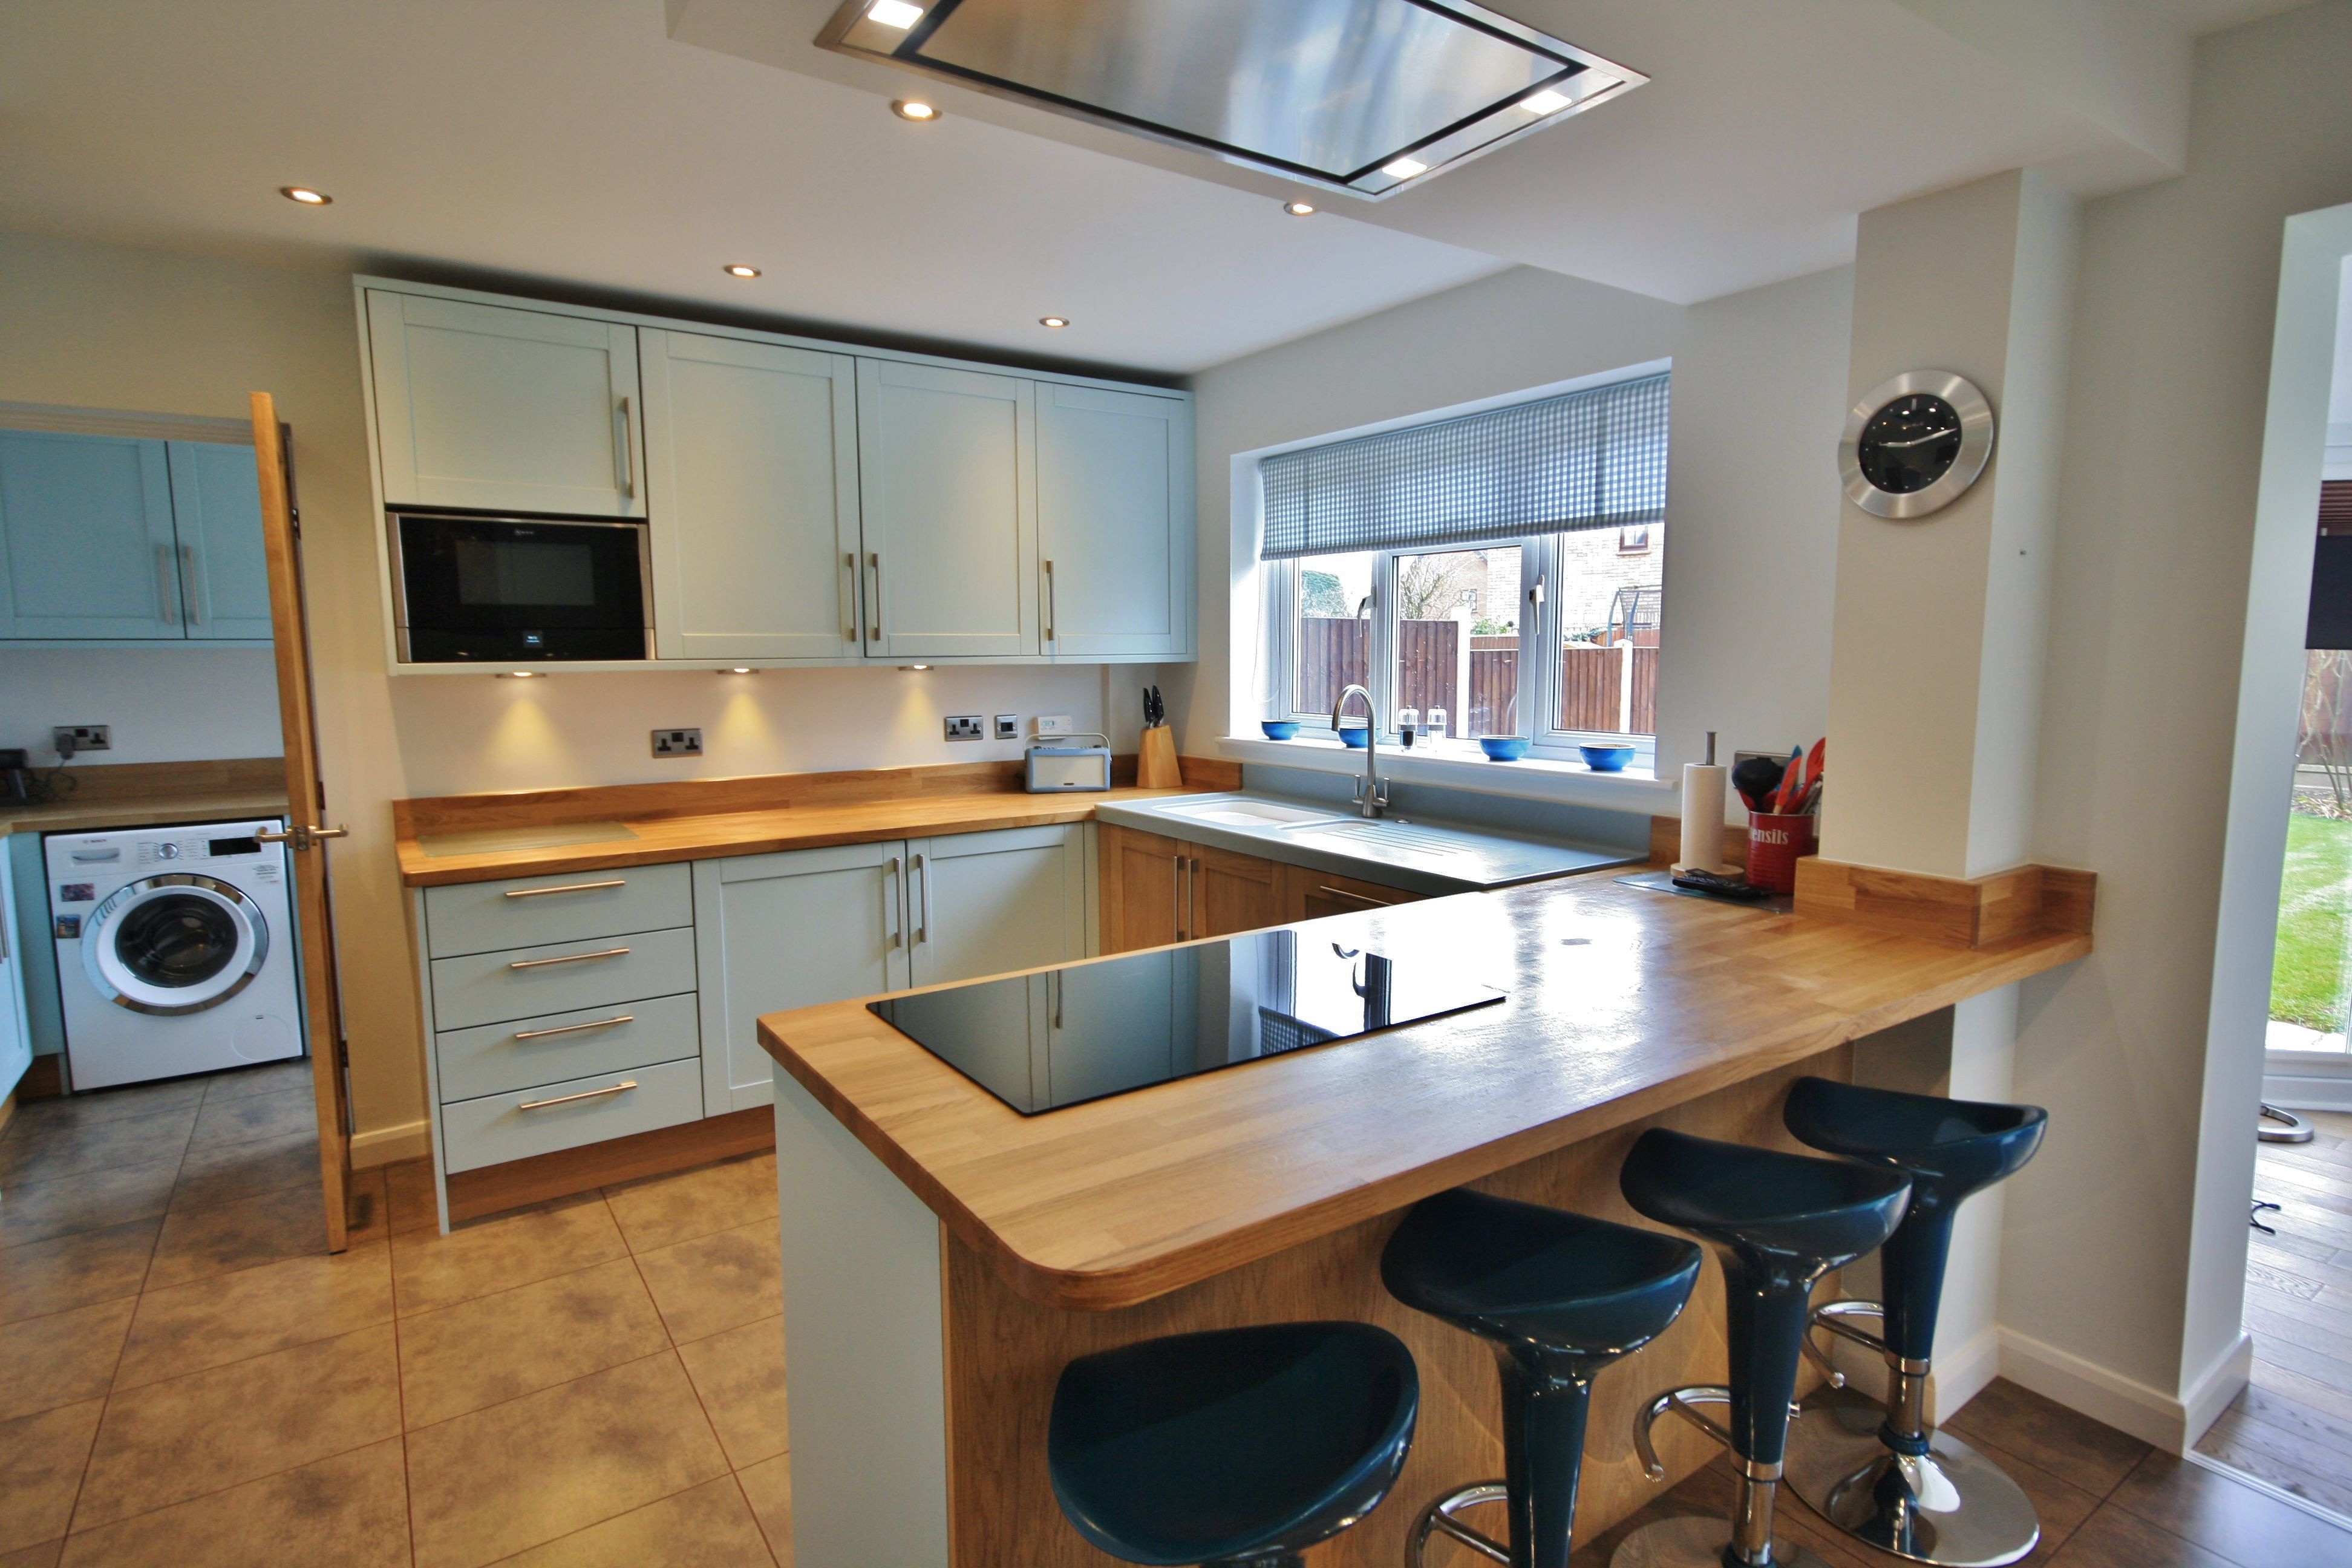 In This Kitchen Design A Peninsular Has Been Used With Seating Area To  Create A Sociable